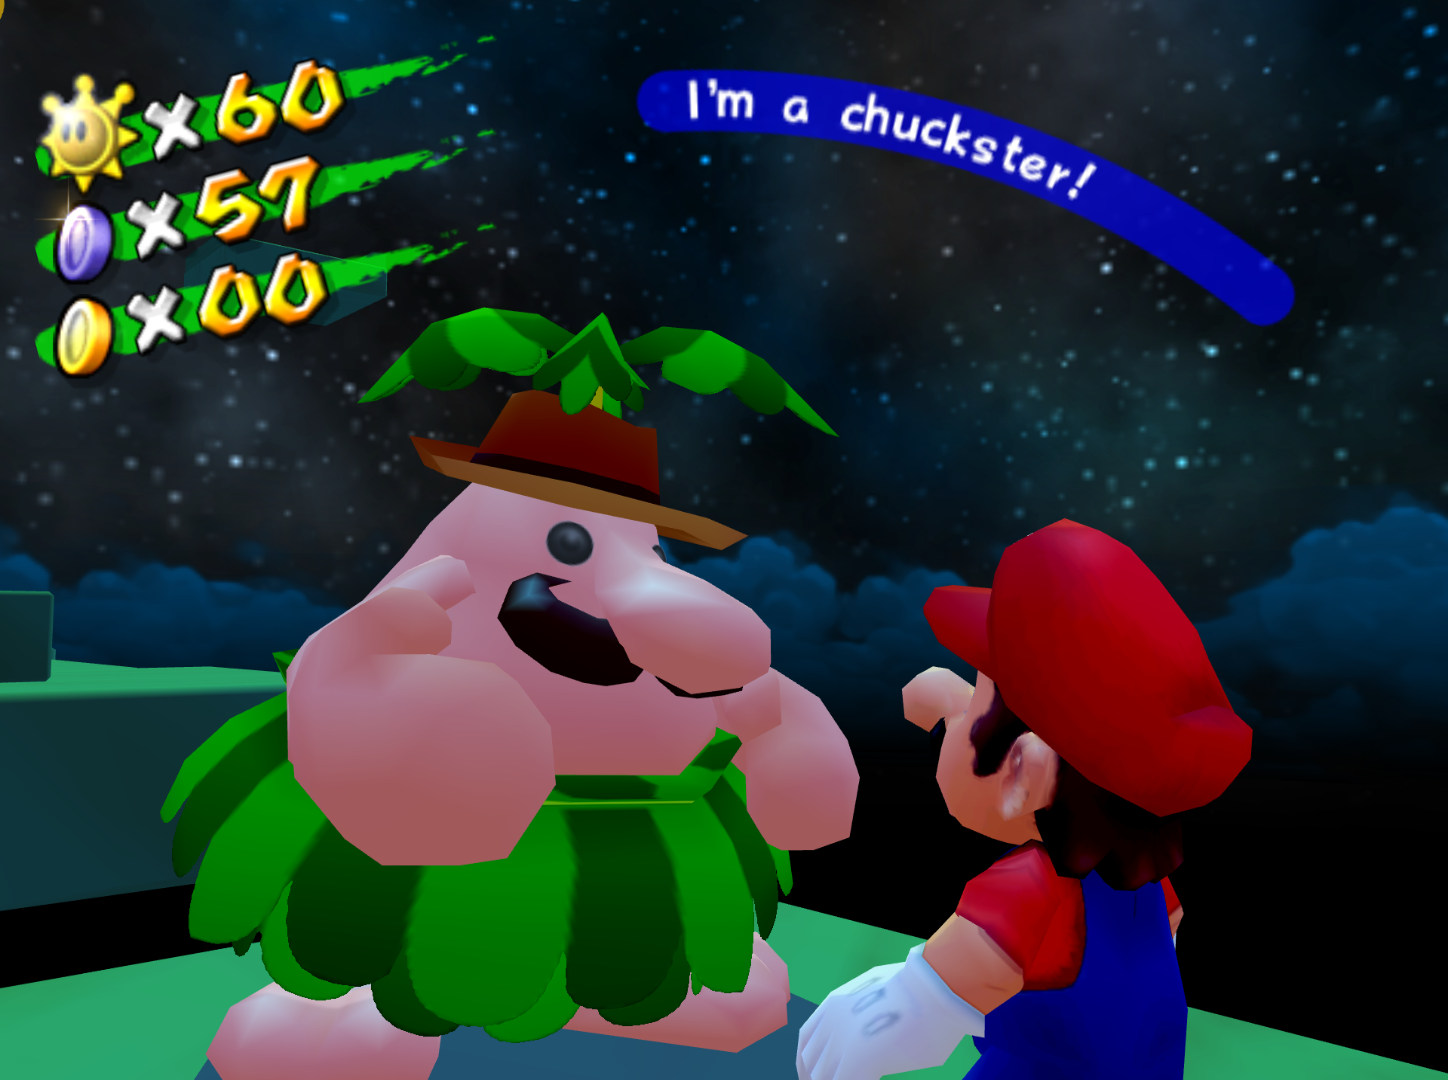 ACT Super Mario Sunshine Chuckster